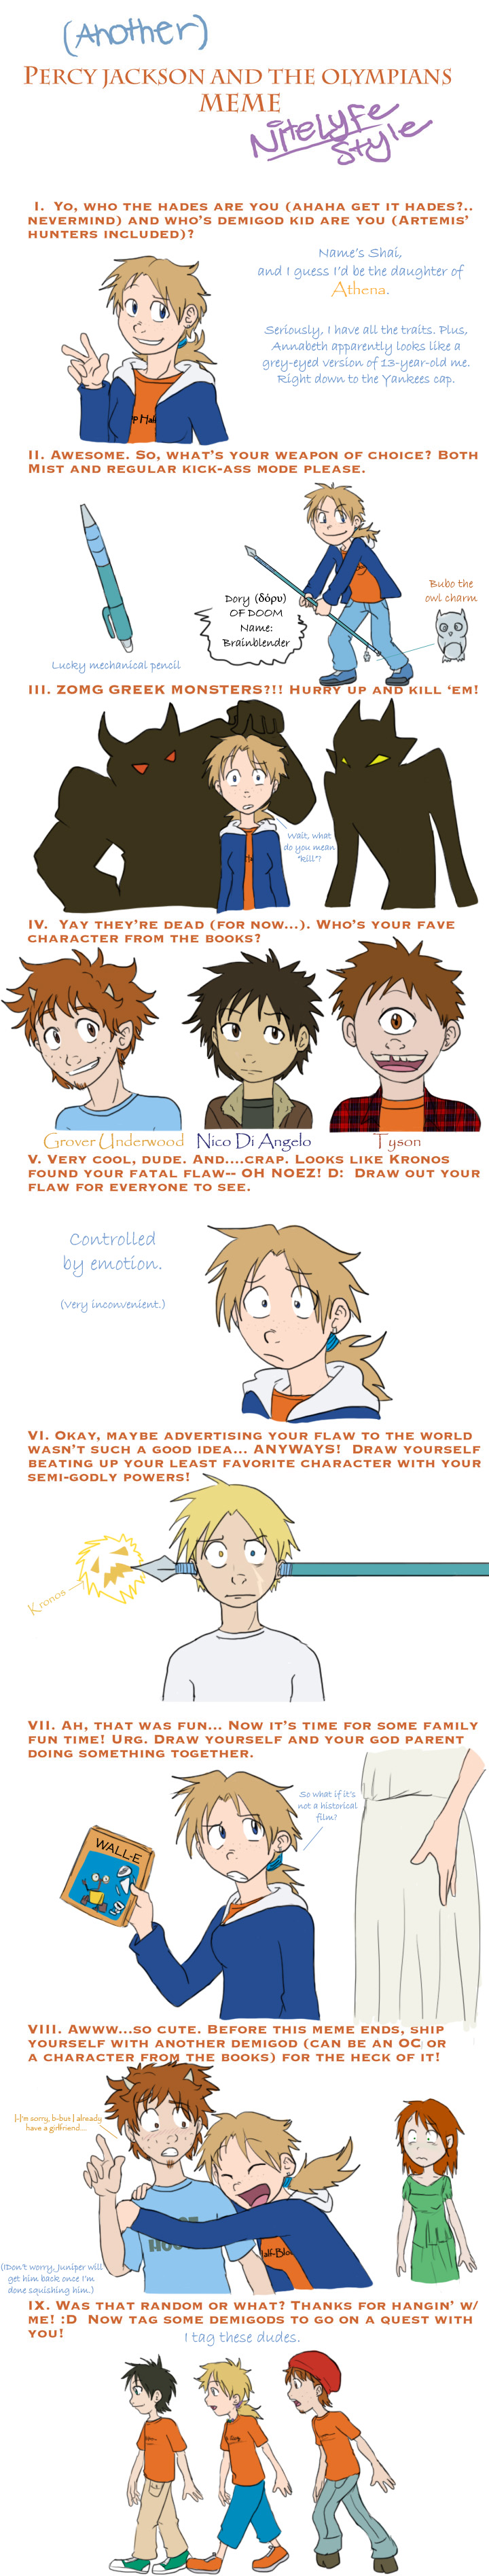 Percy Jackson Meme of AWESOME by demonoflight